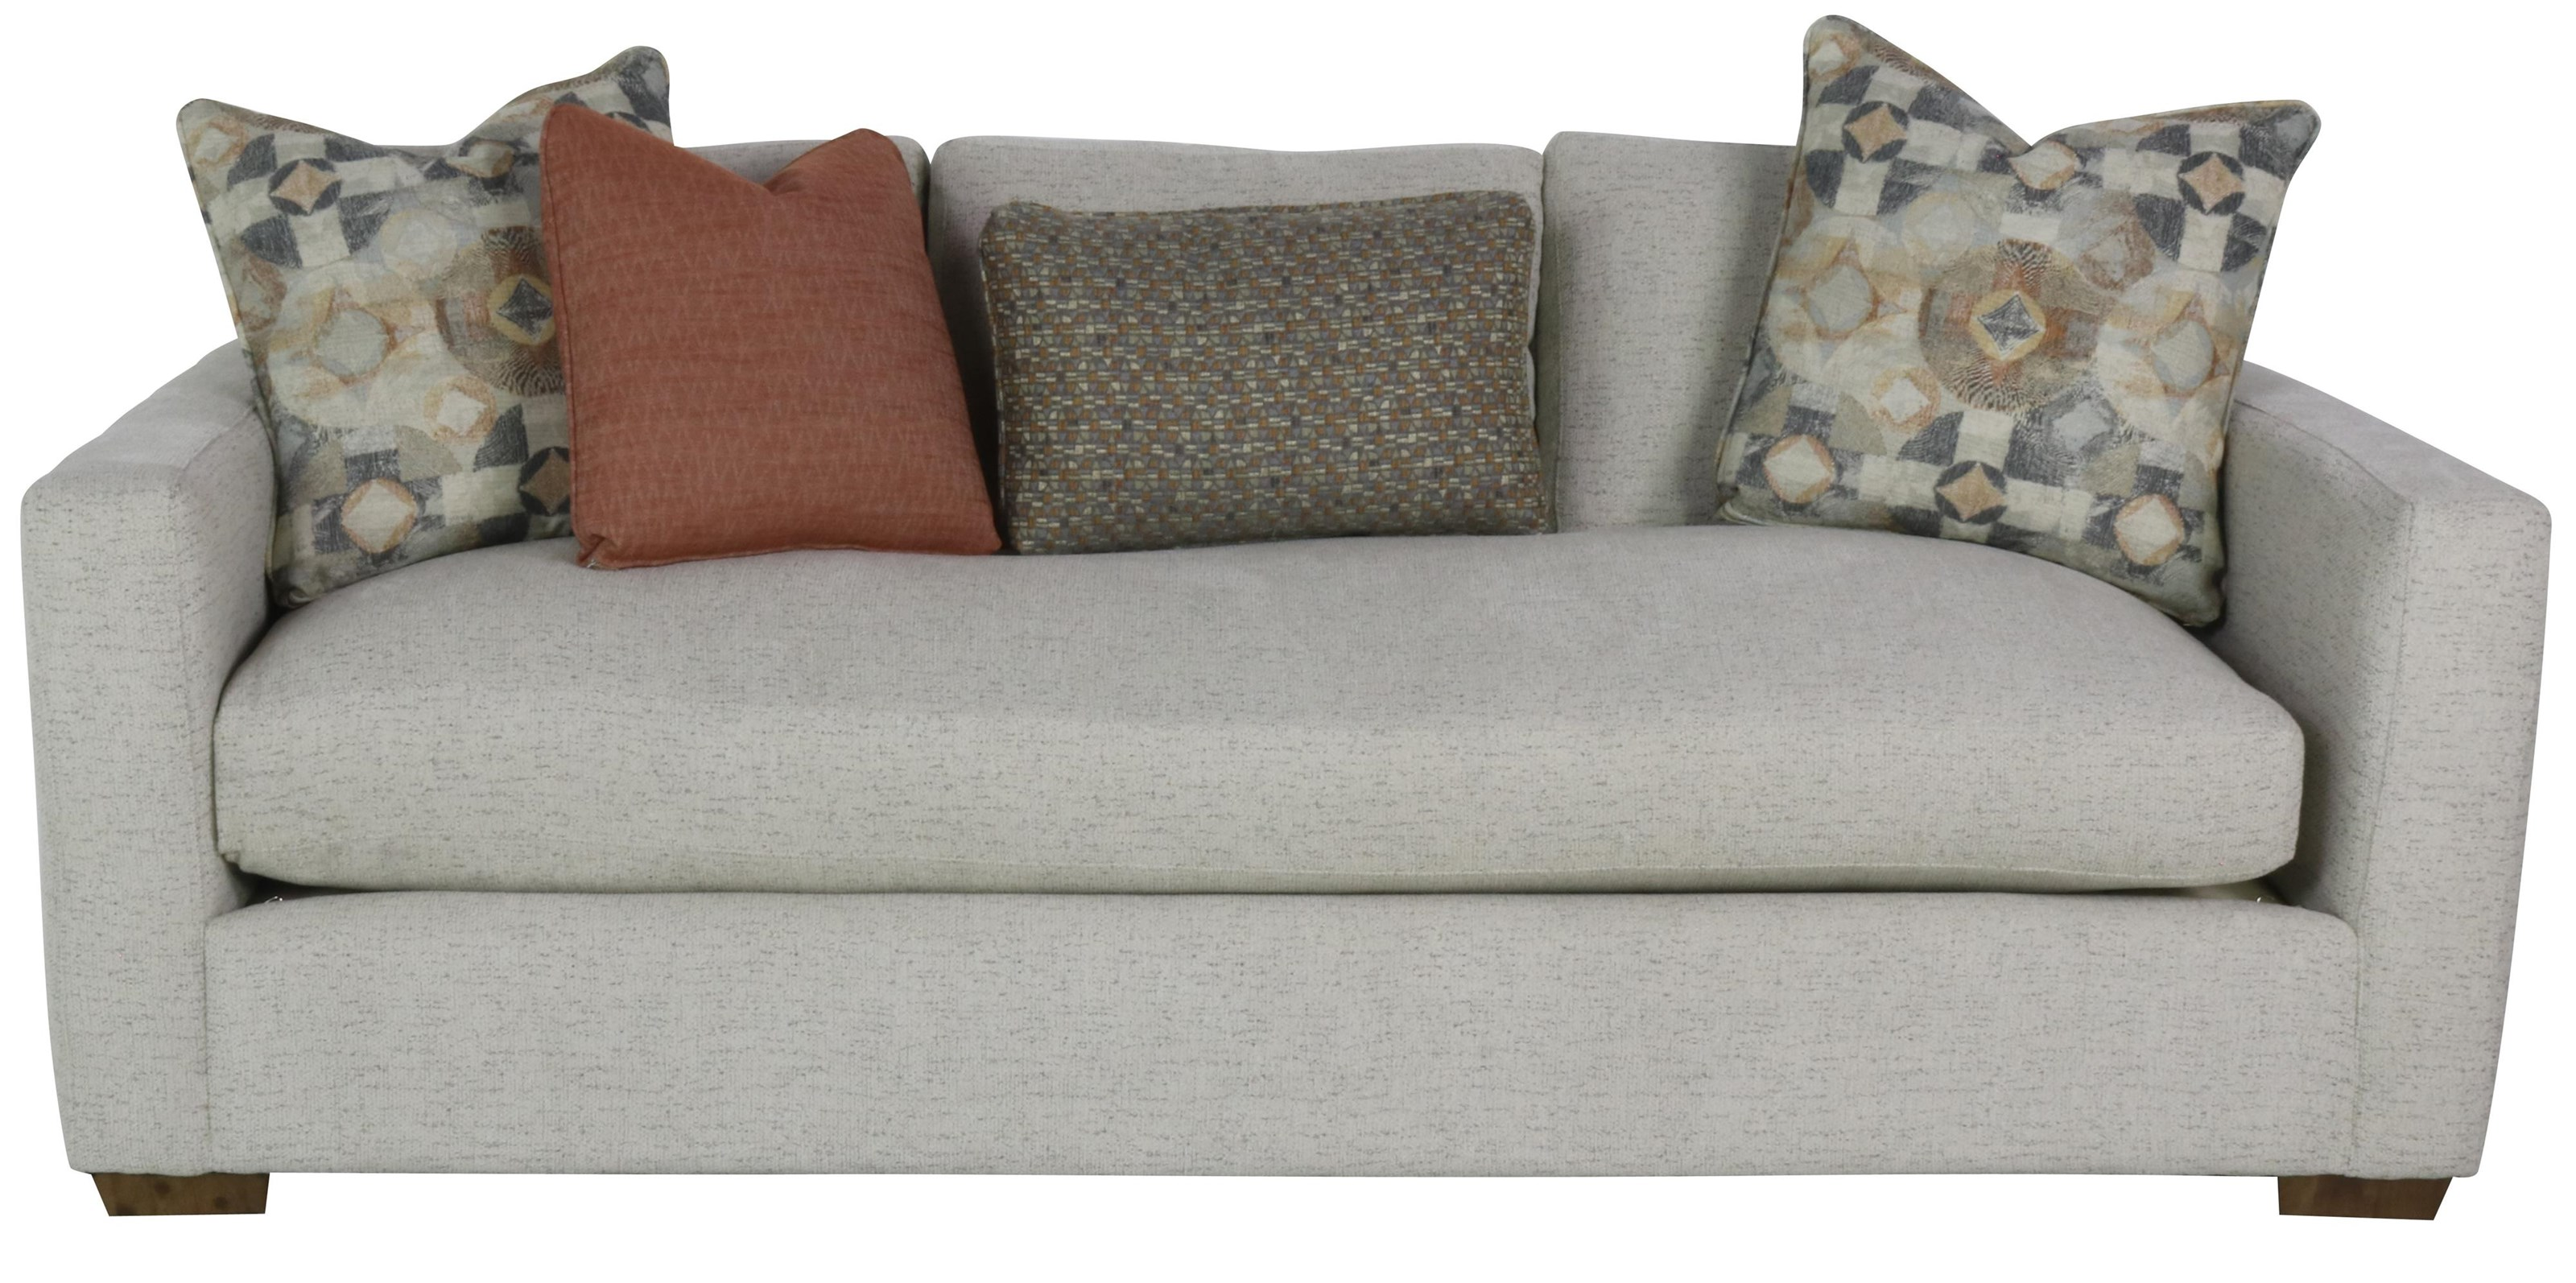 792750BD Sofa by Cozi Life Upholstery at Sprintz Furniture